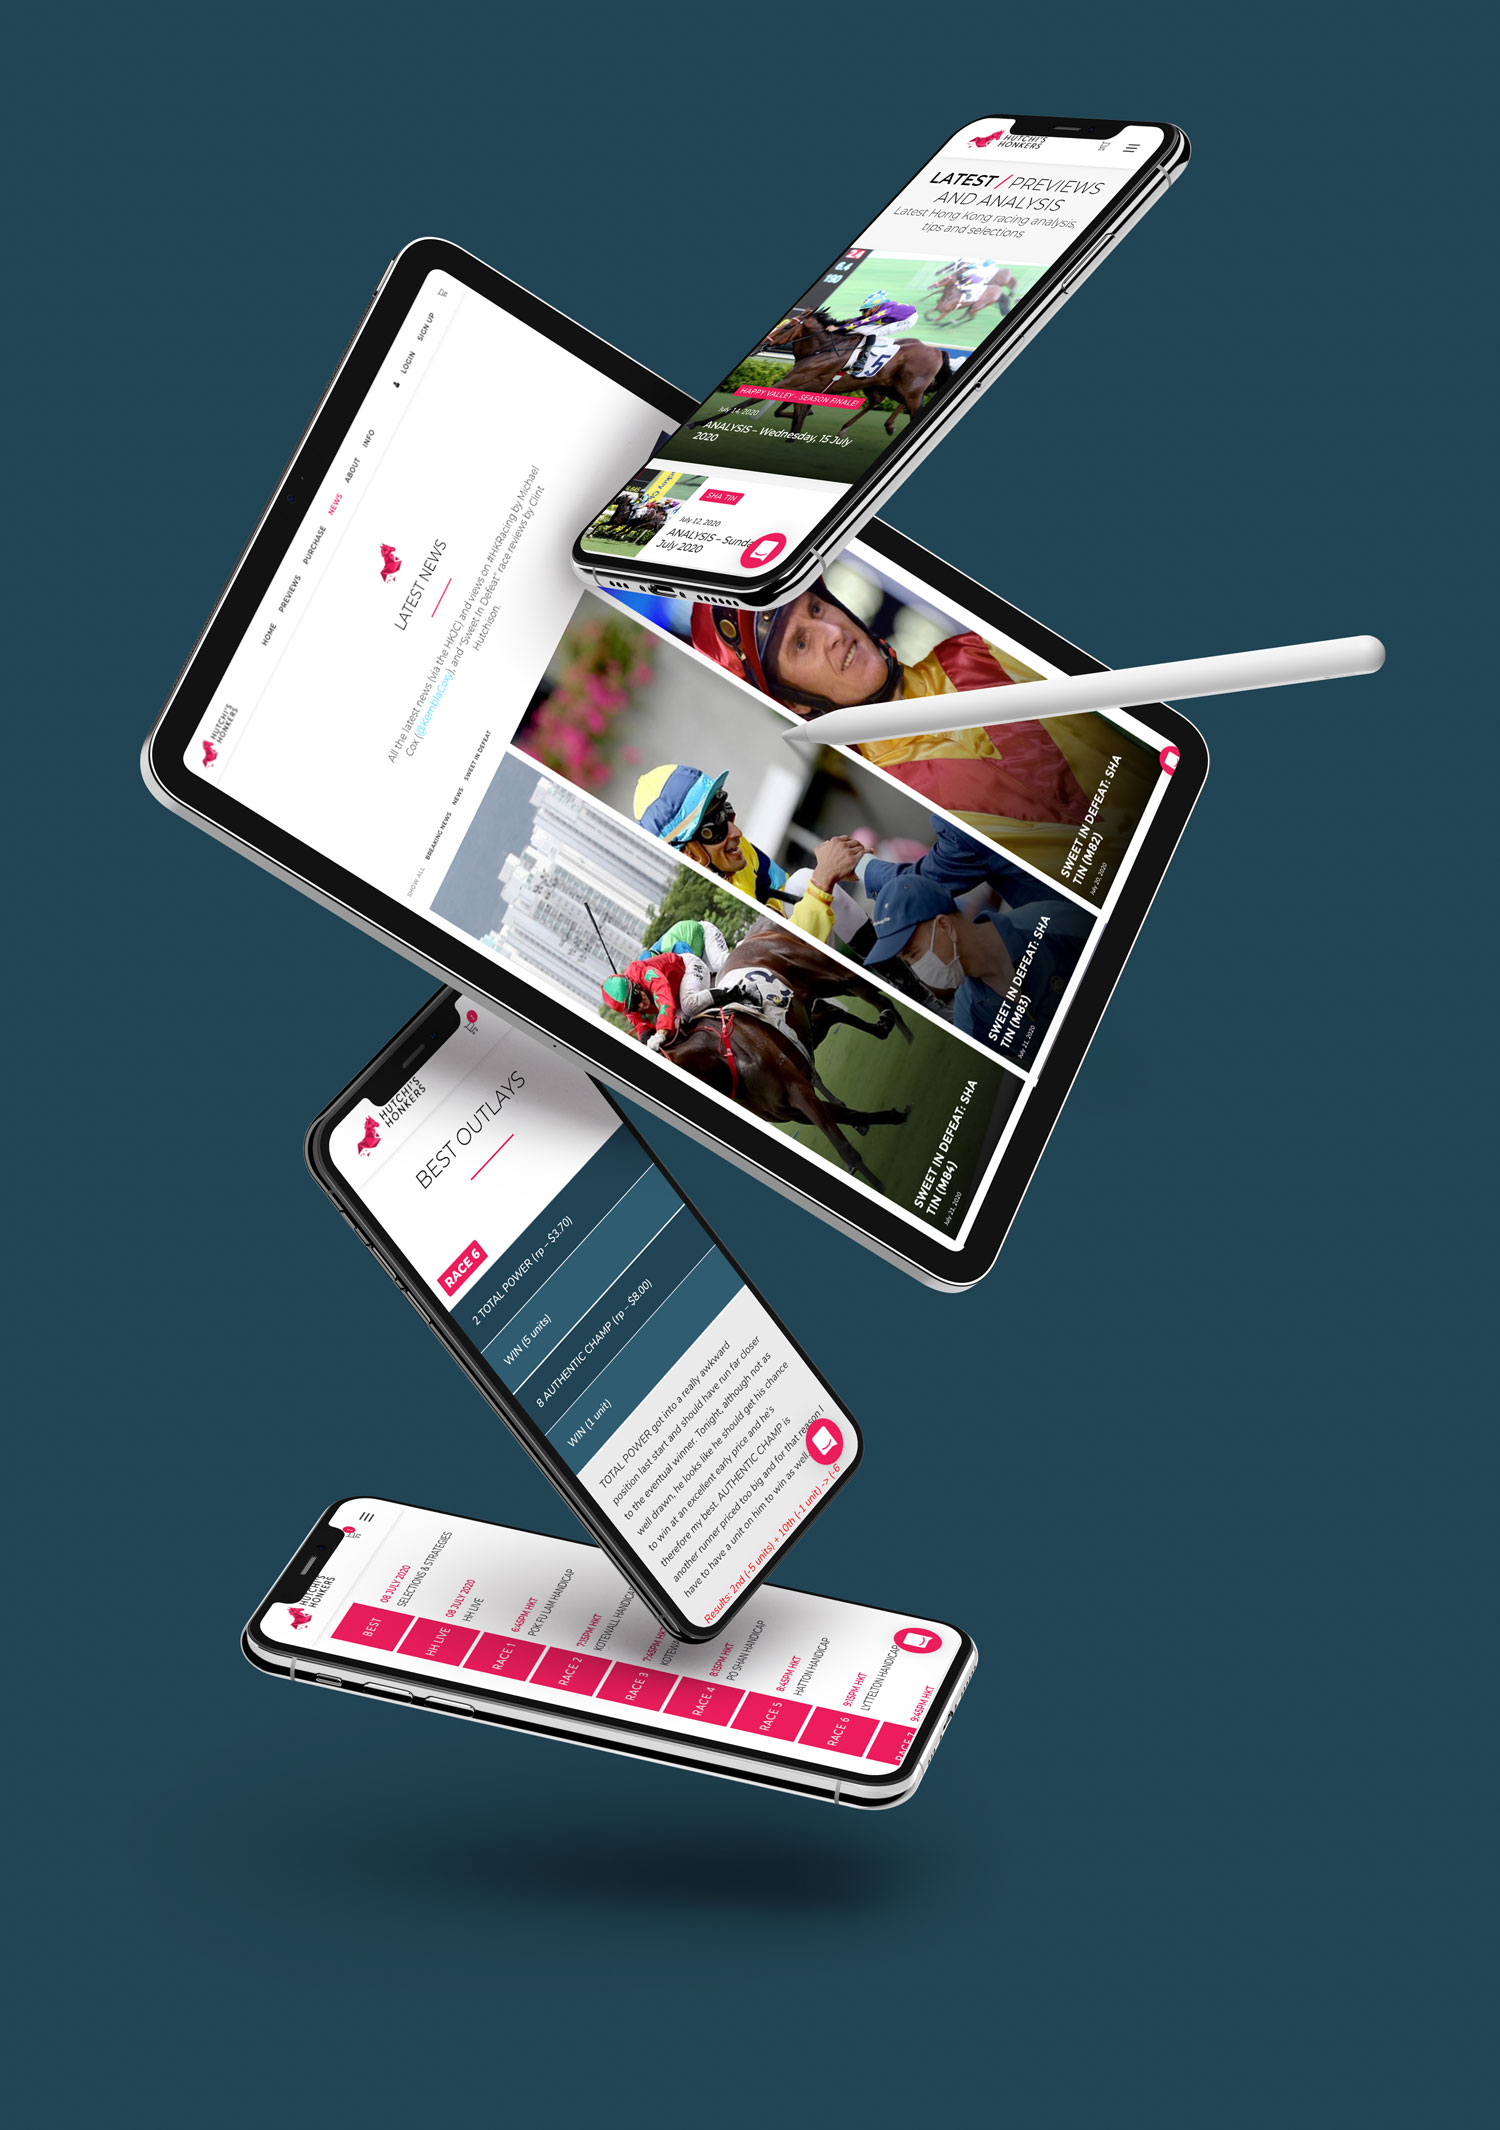 hh responsive devices